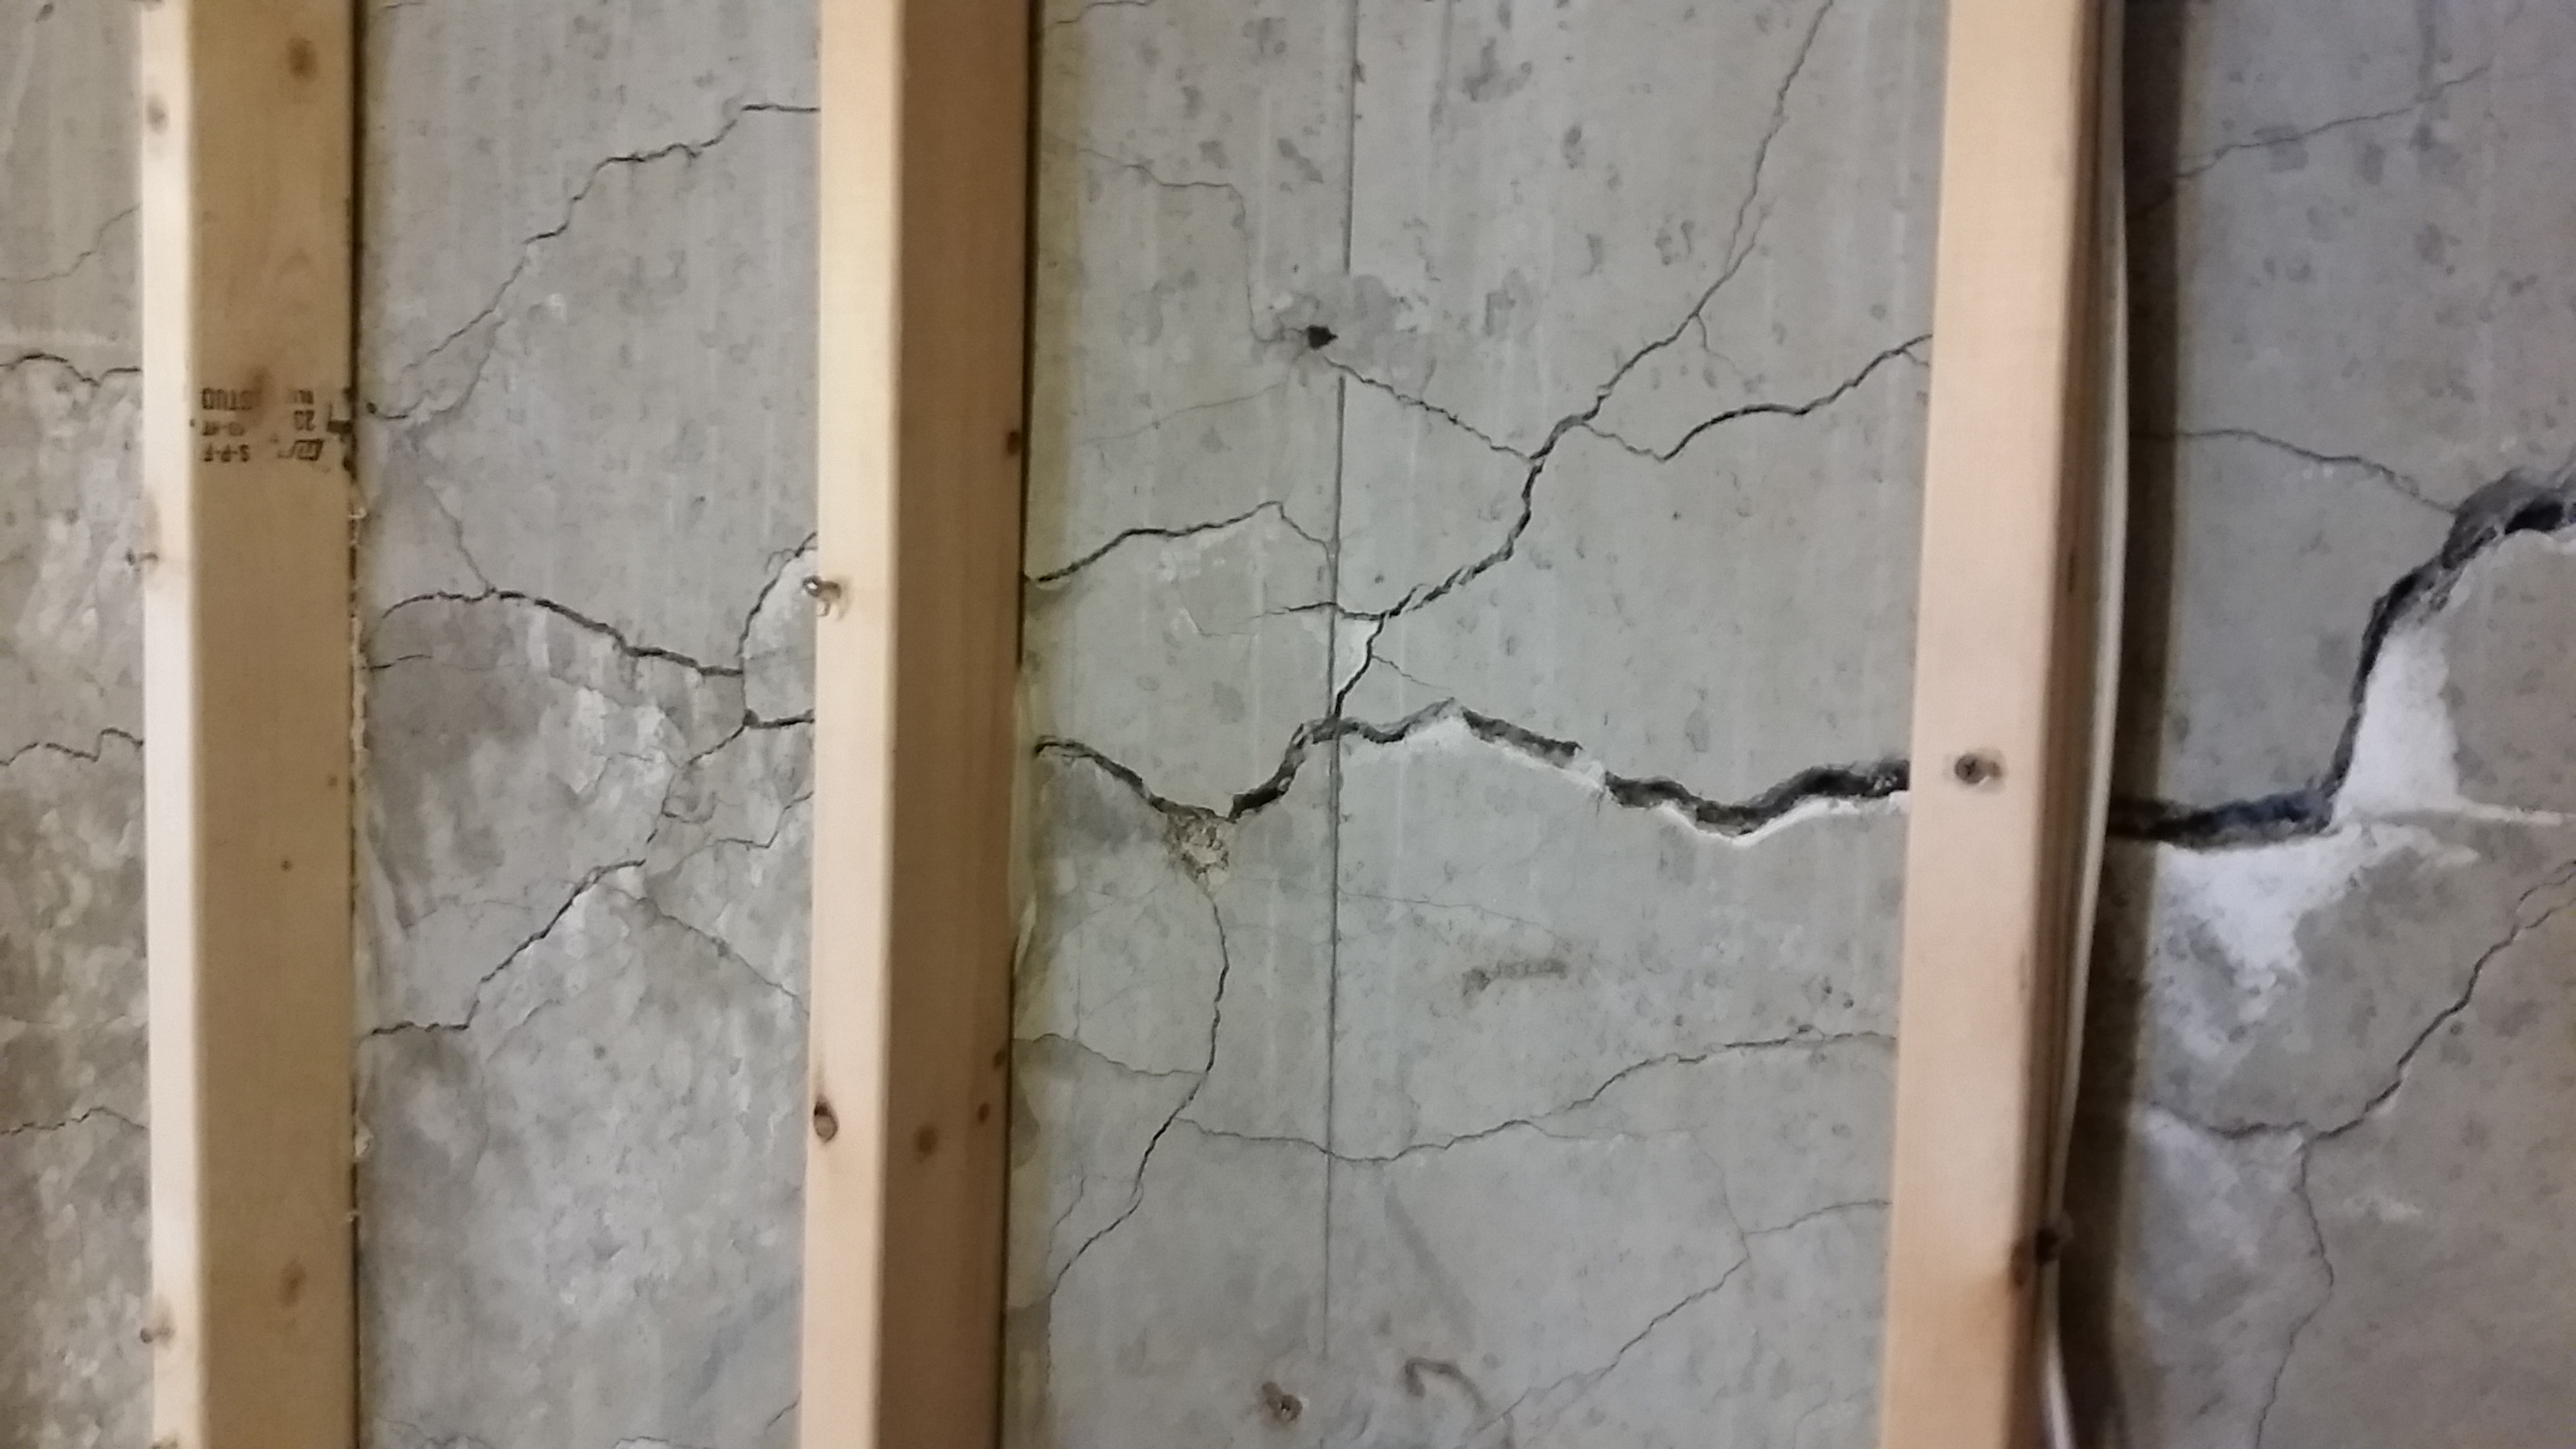 cracked foundation (image) Opens in new window